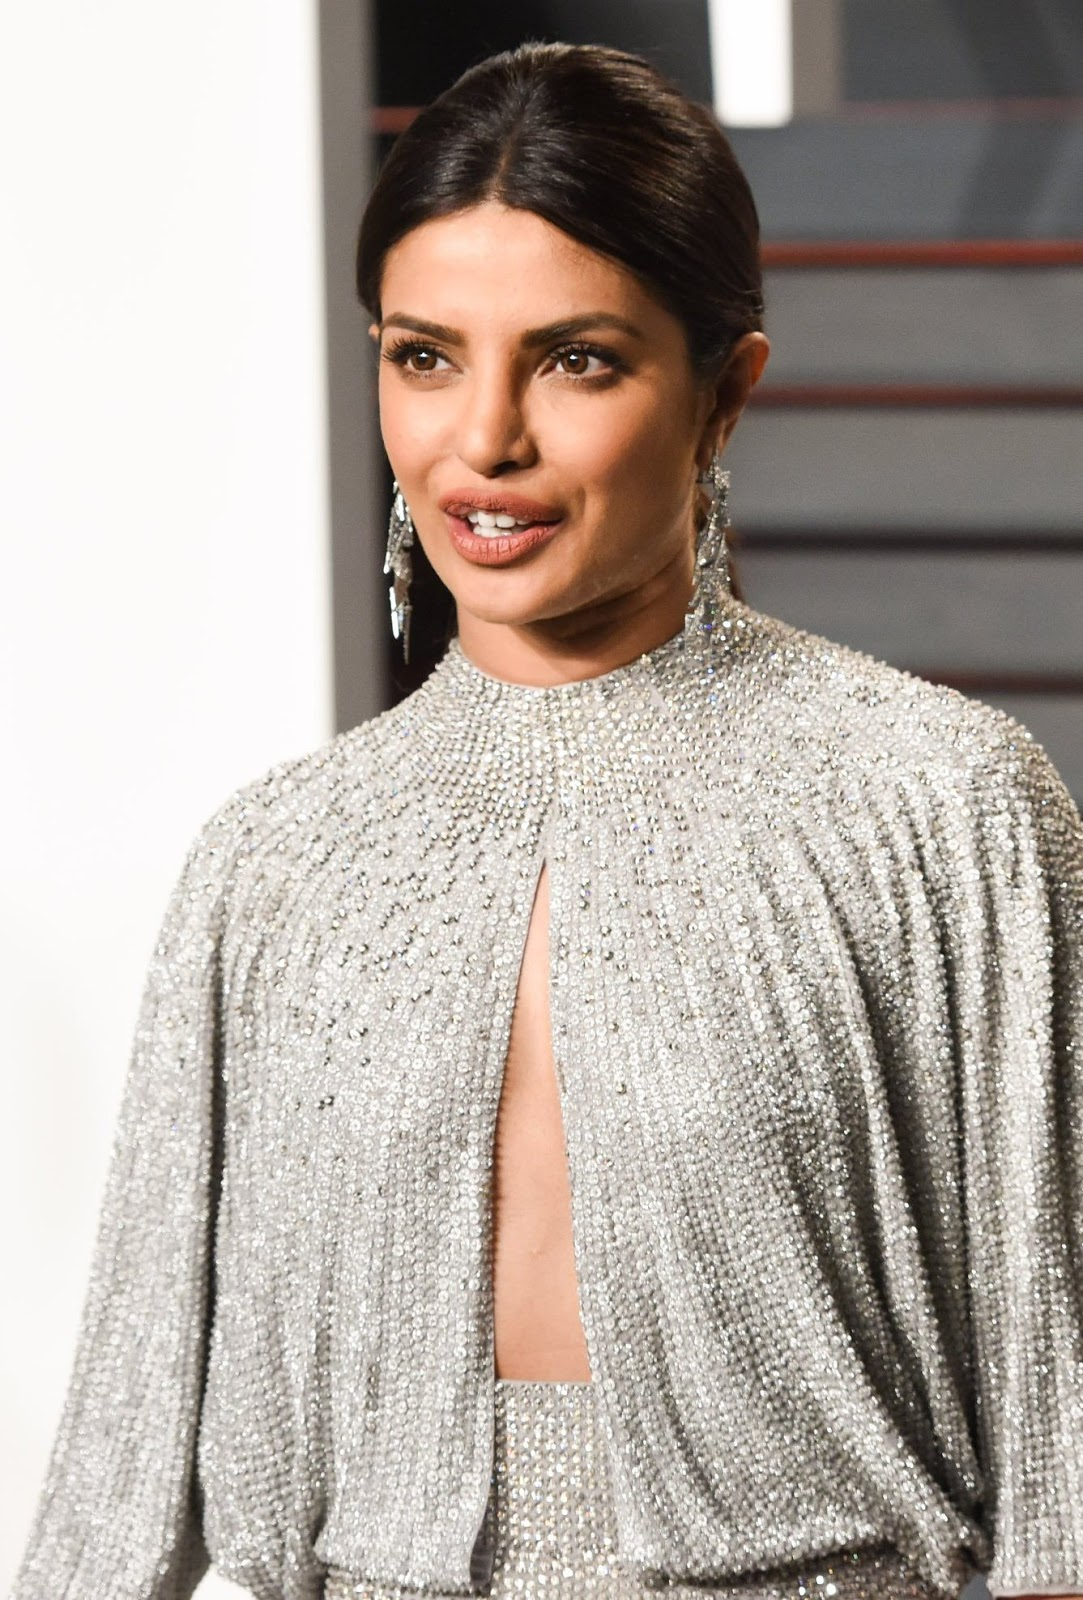 High Quality Bollywood Celebrity Pictures Priyanka Chopra -8854